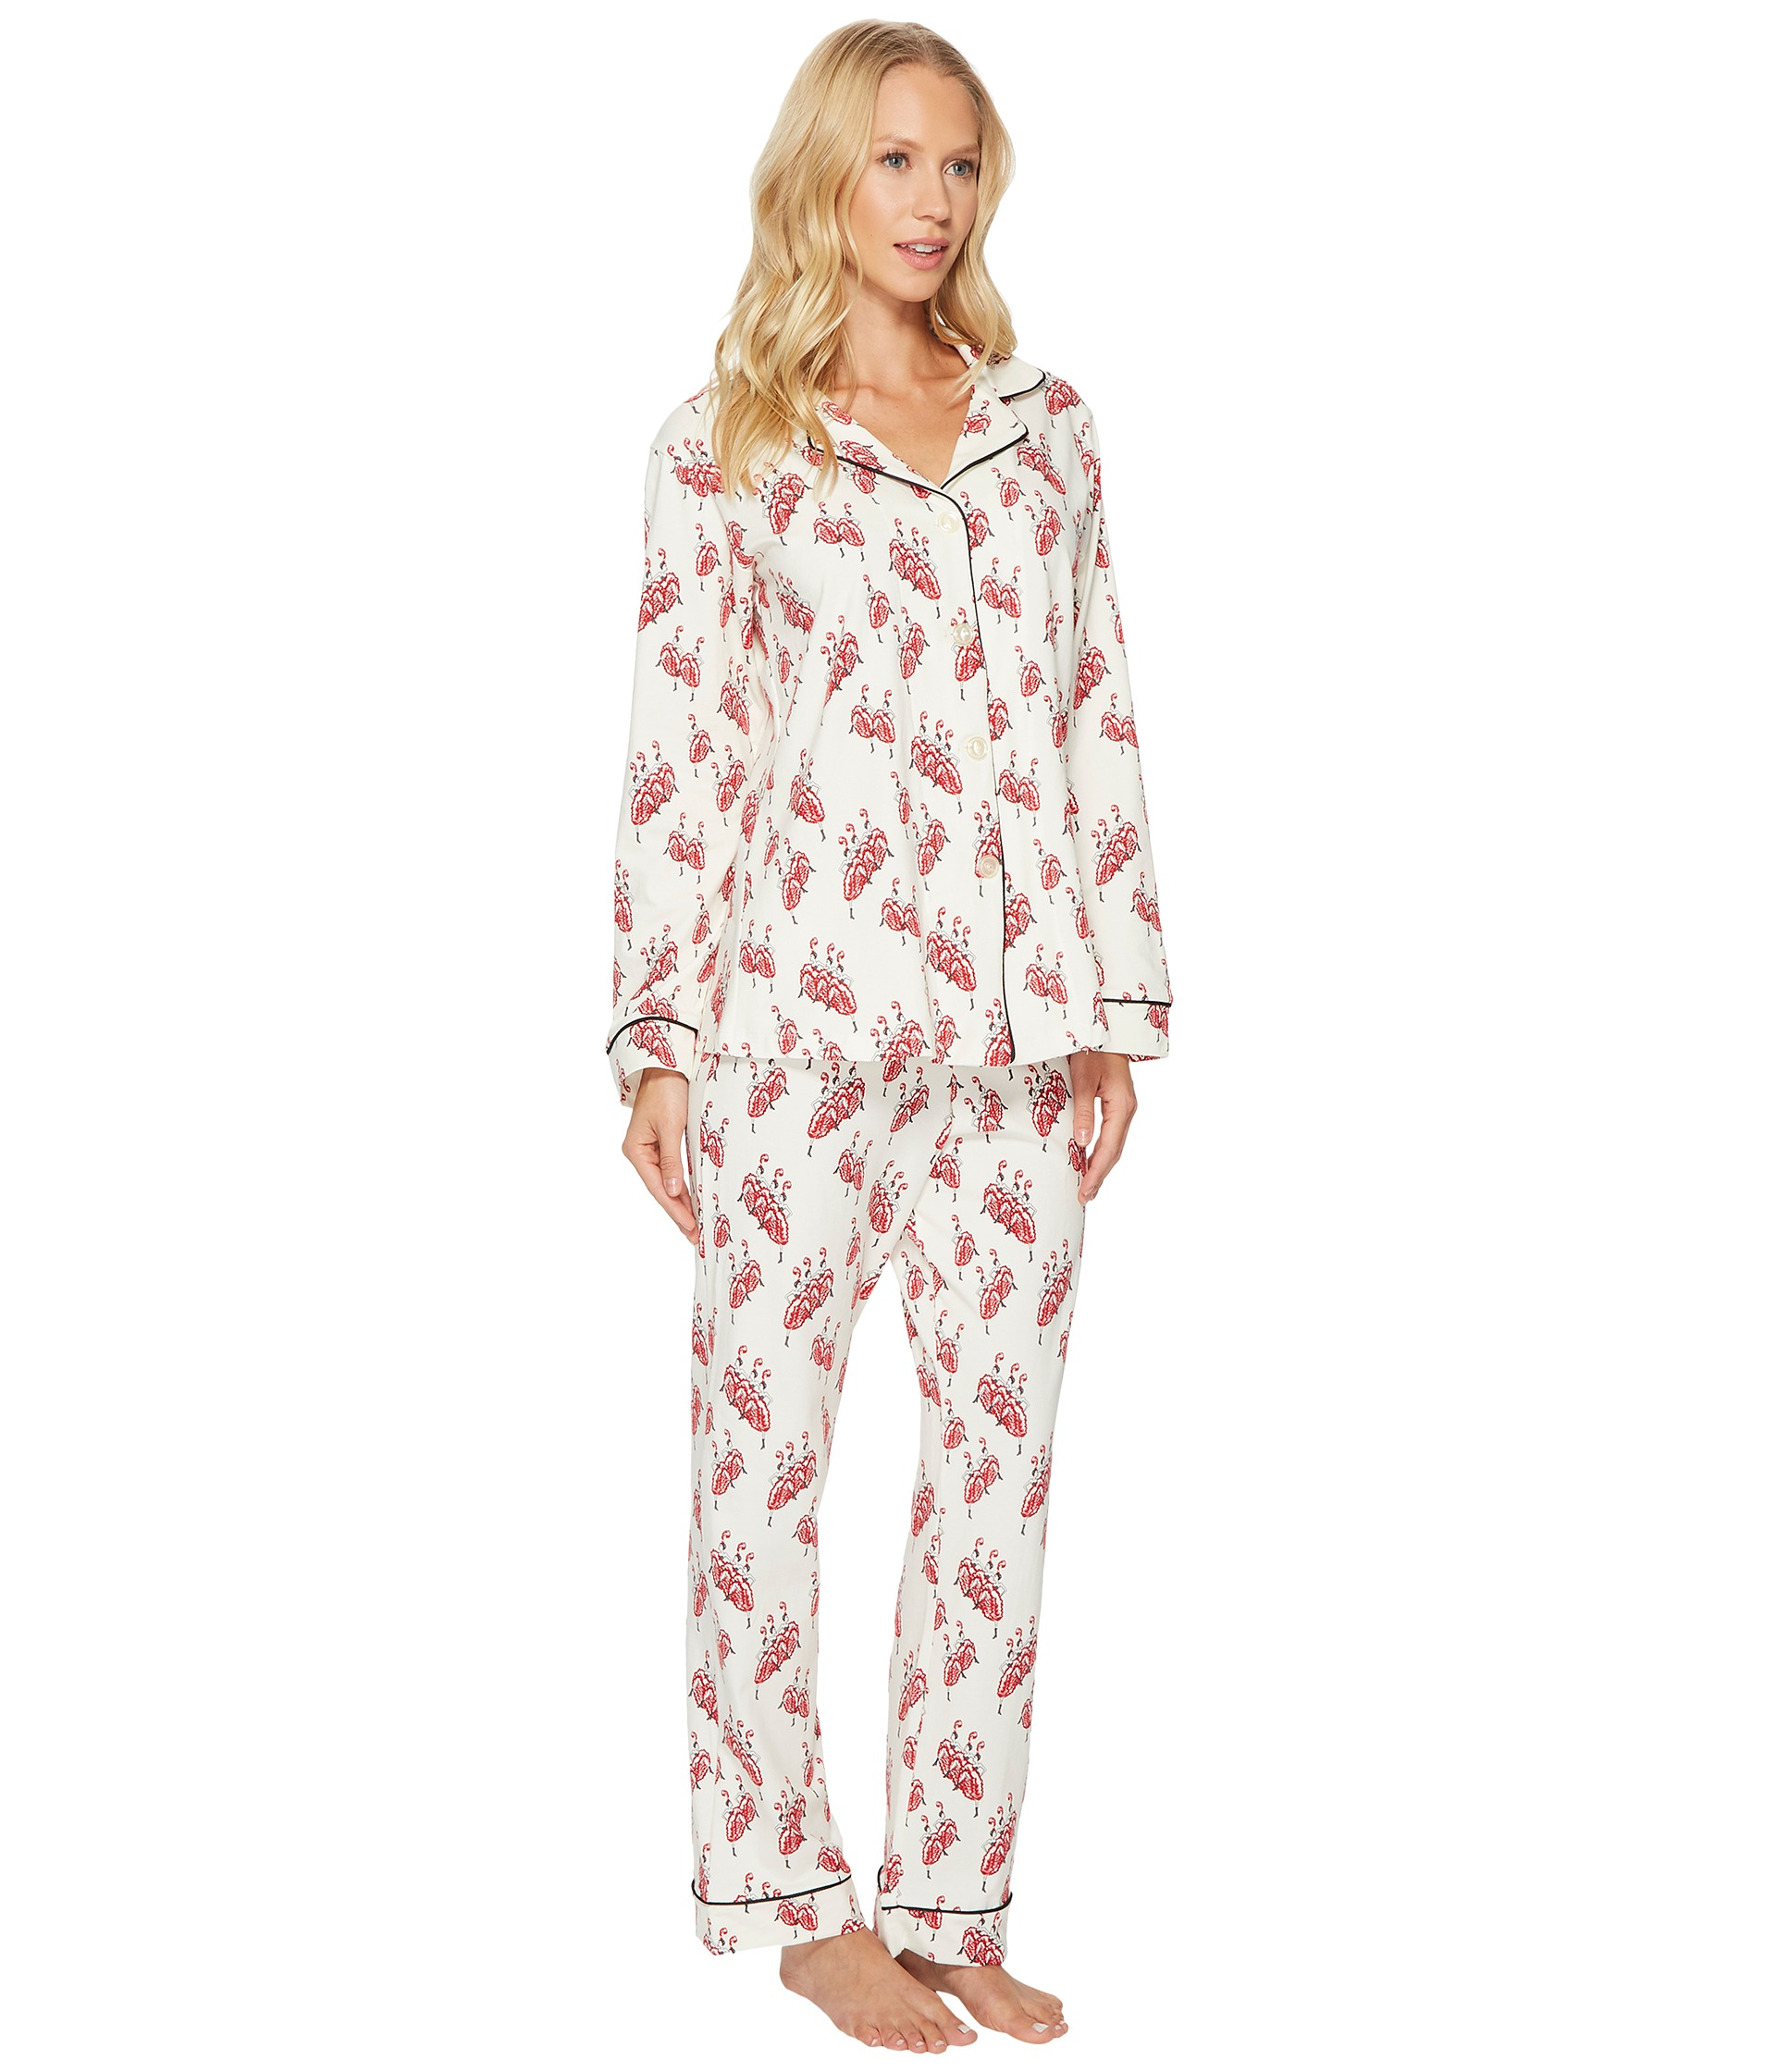 You searched for: knit pajama set! Etsy is the home to thousands of handmade, vintage, and one-of-a-kind products and gifts related to your search. No matter what you're looking for or where you are in the world, our global marketplace of sellers can help you find unique and affordable options. Let's get started!